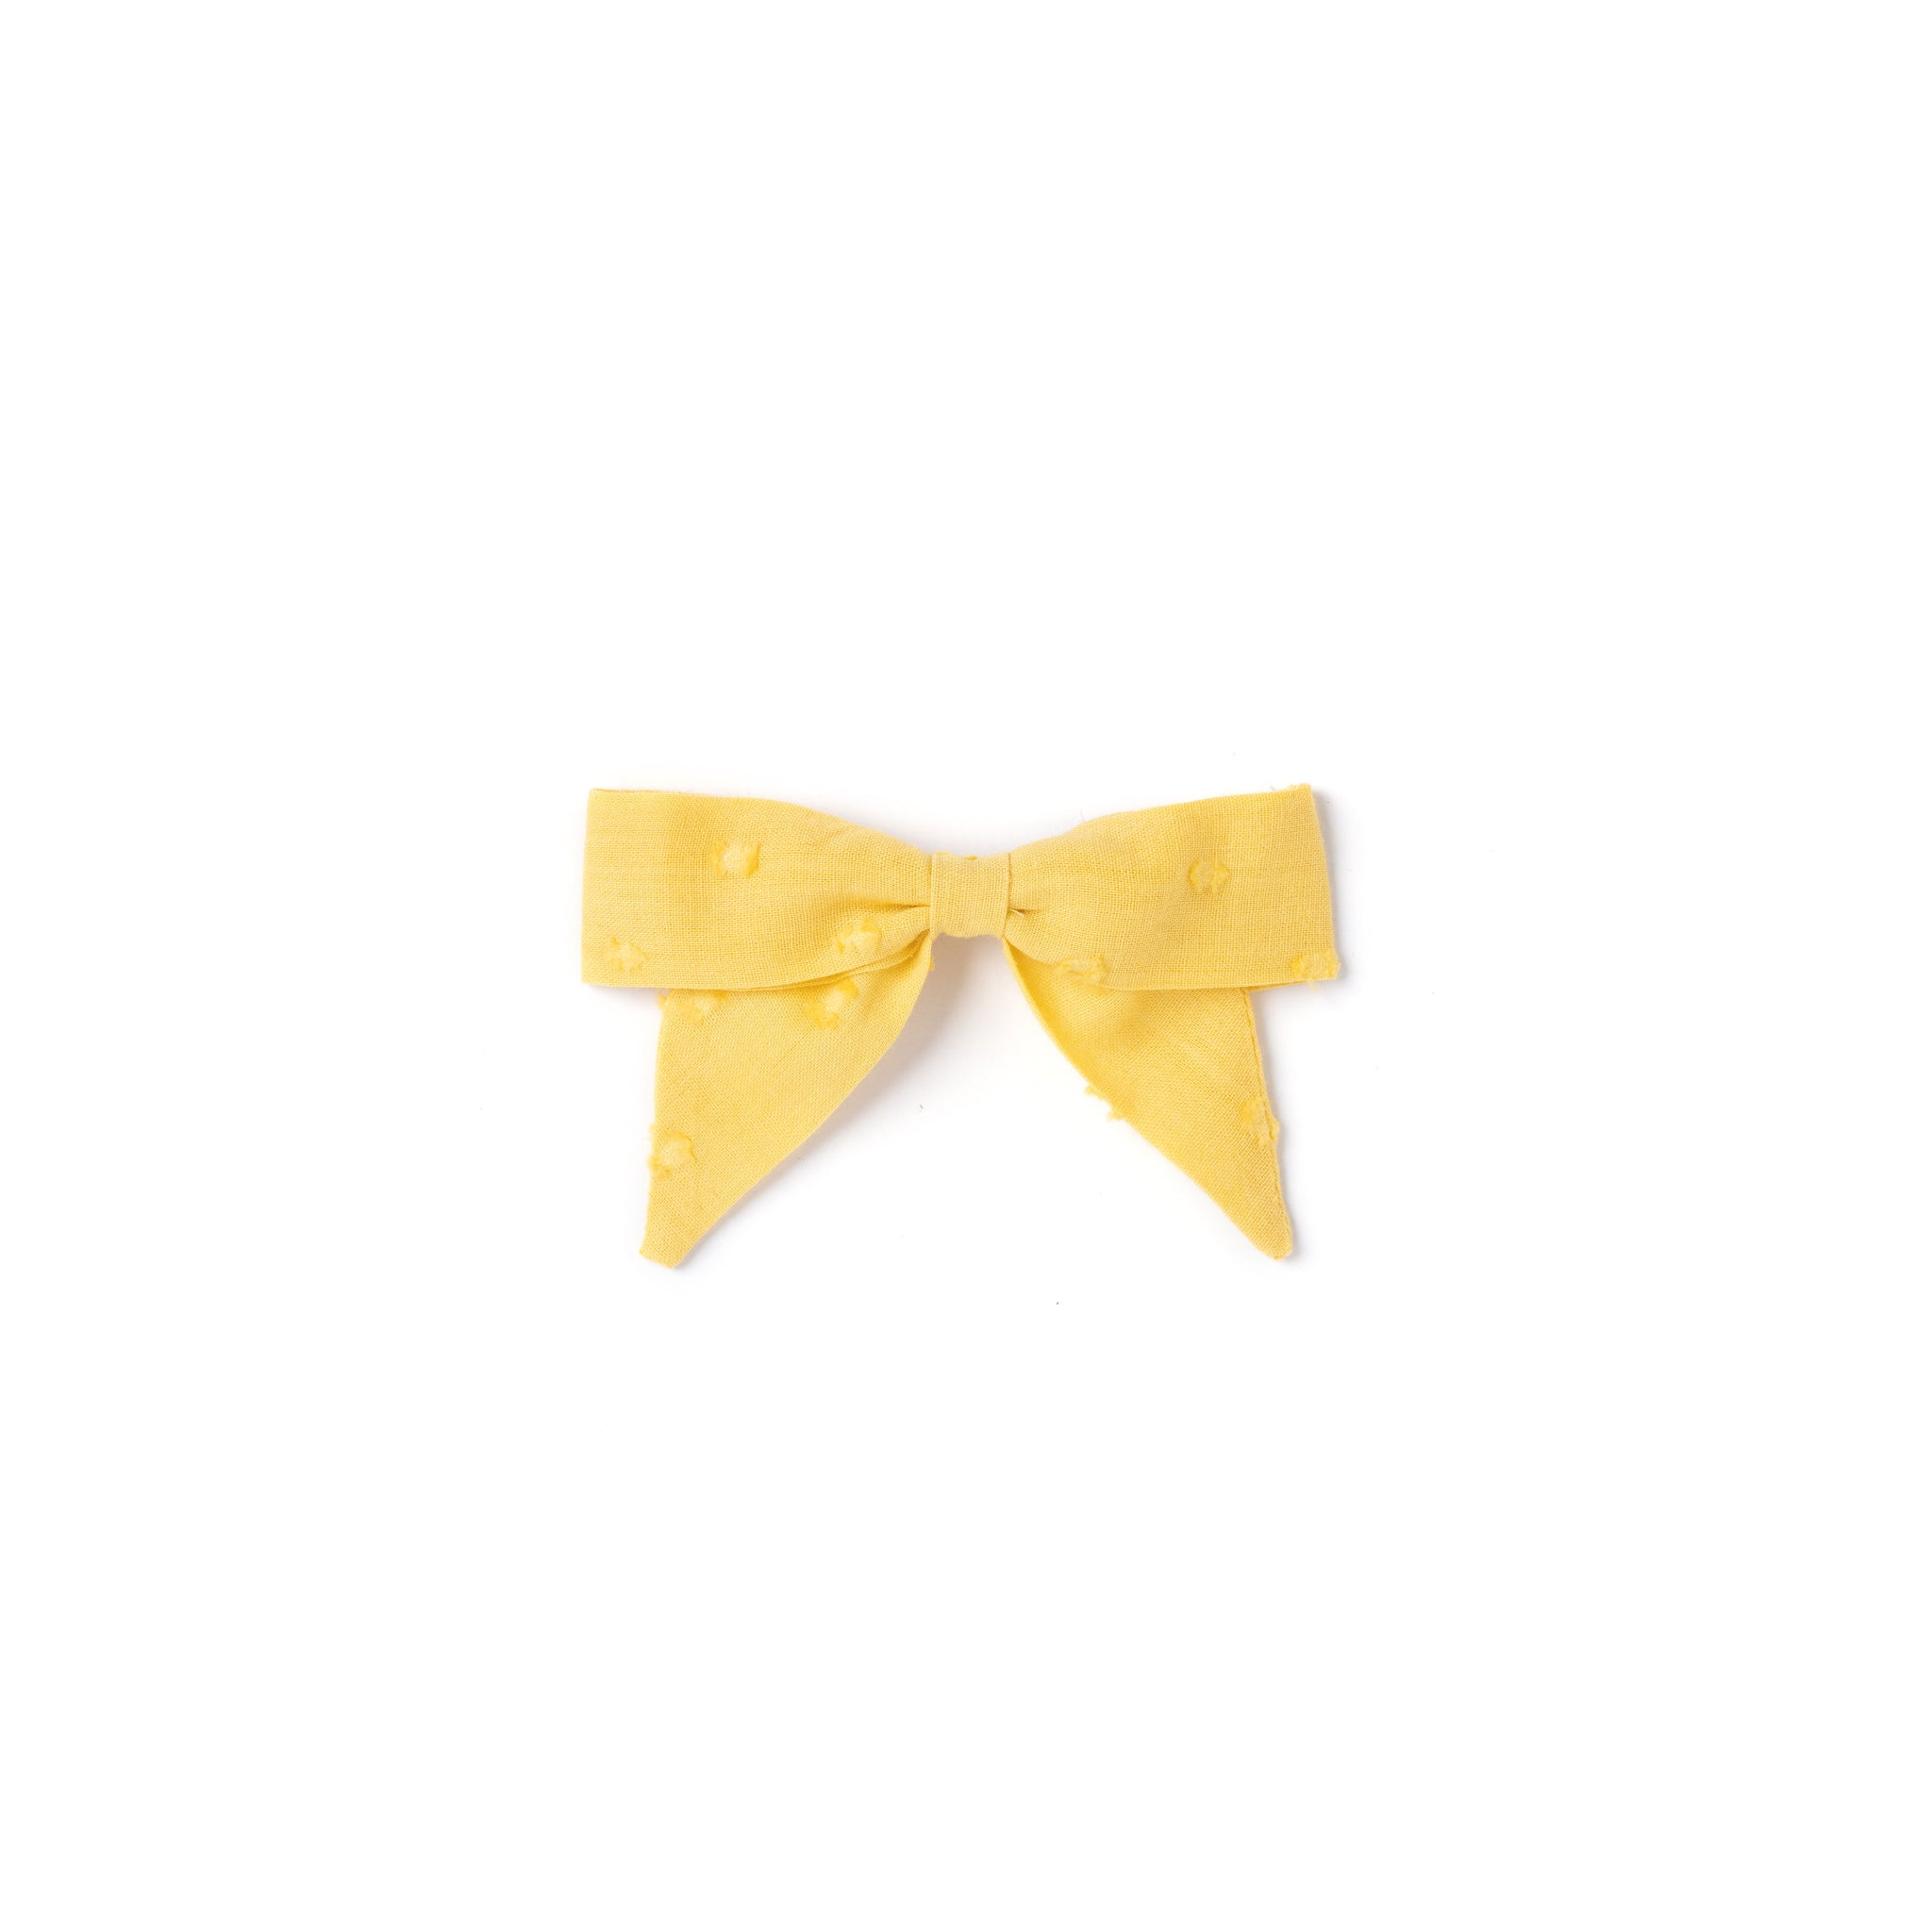 Botany Bow, Mustard Swiss Dot